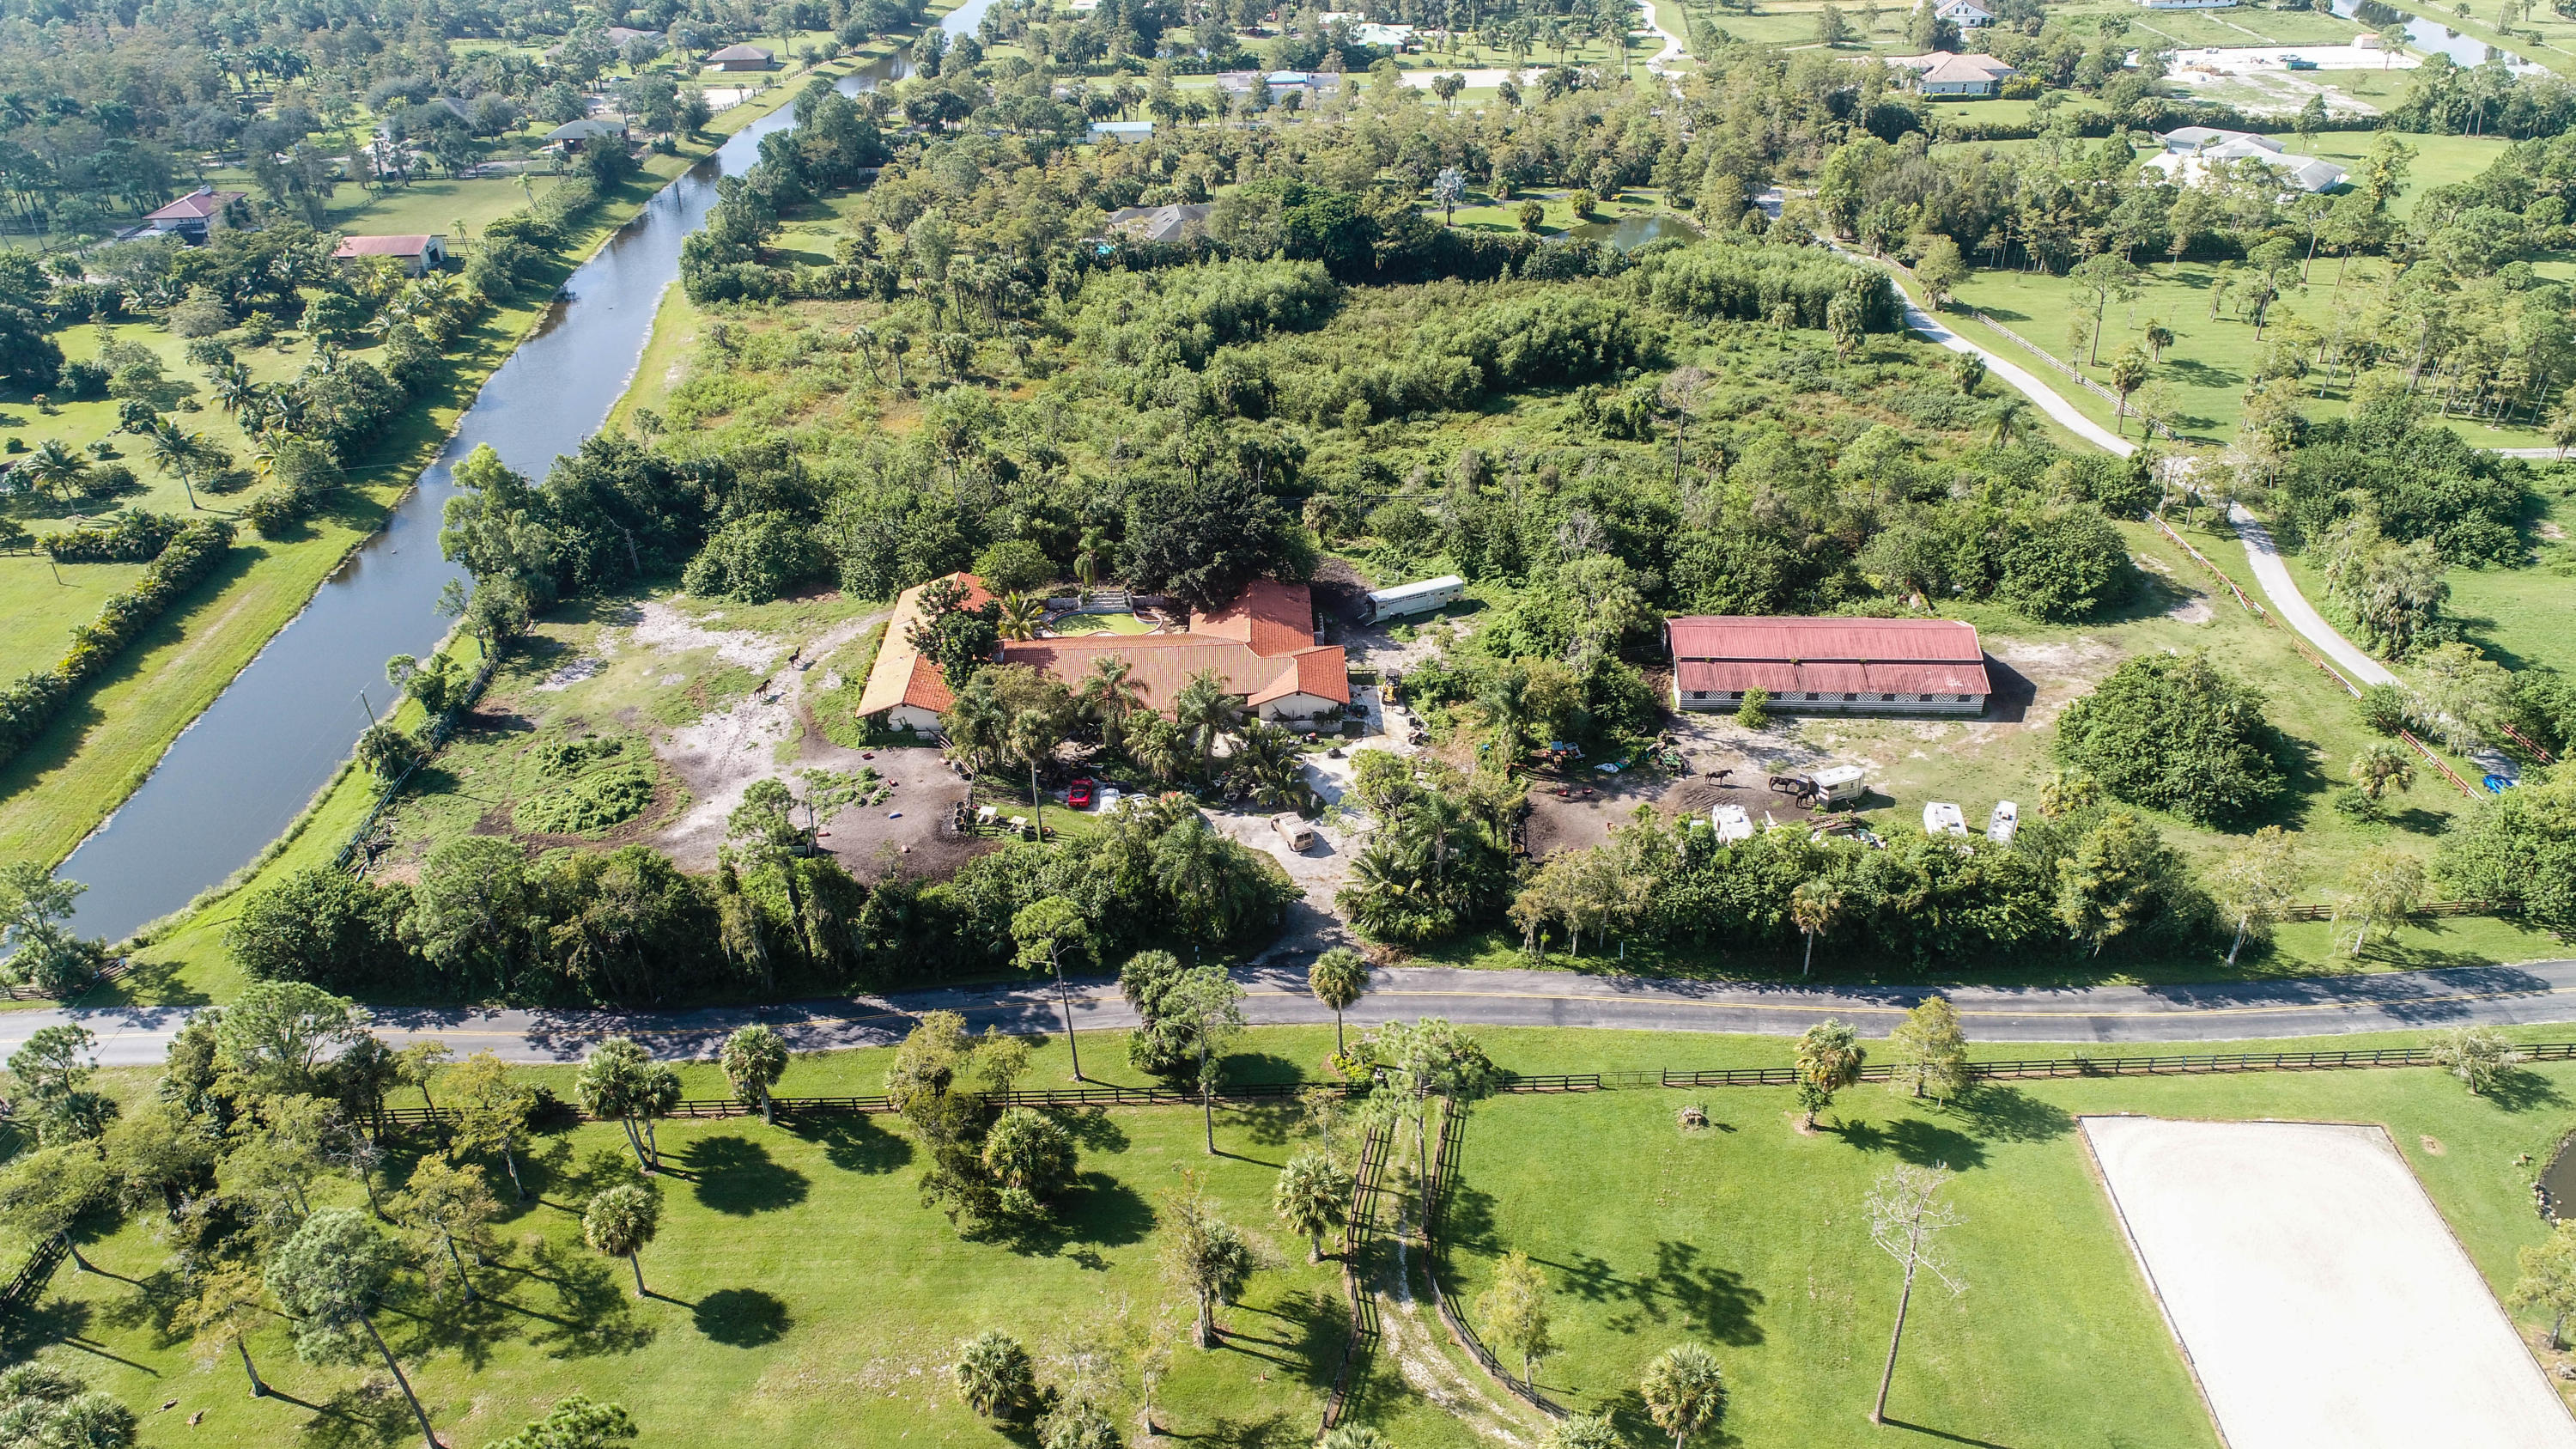 2438 Palm Deer Drive, Loxahatchee, Florida